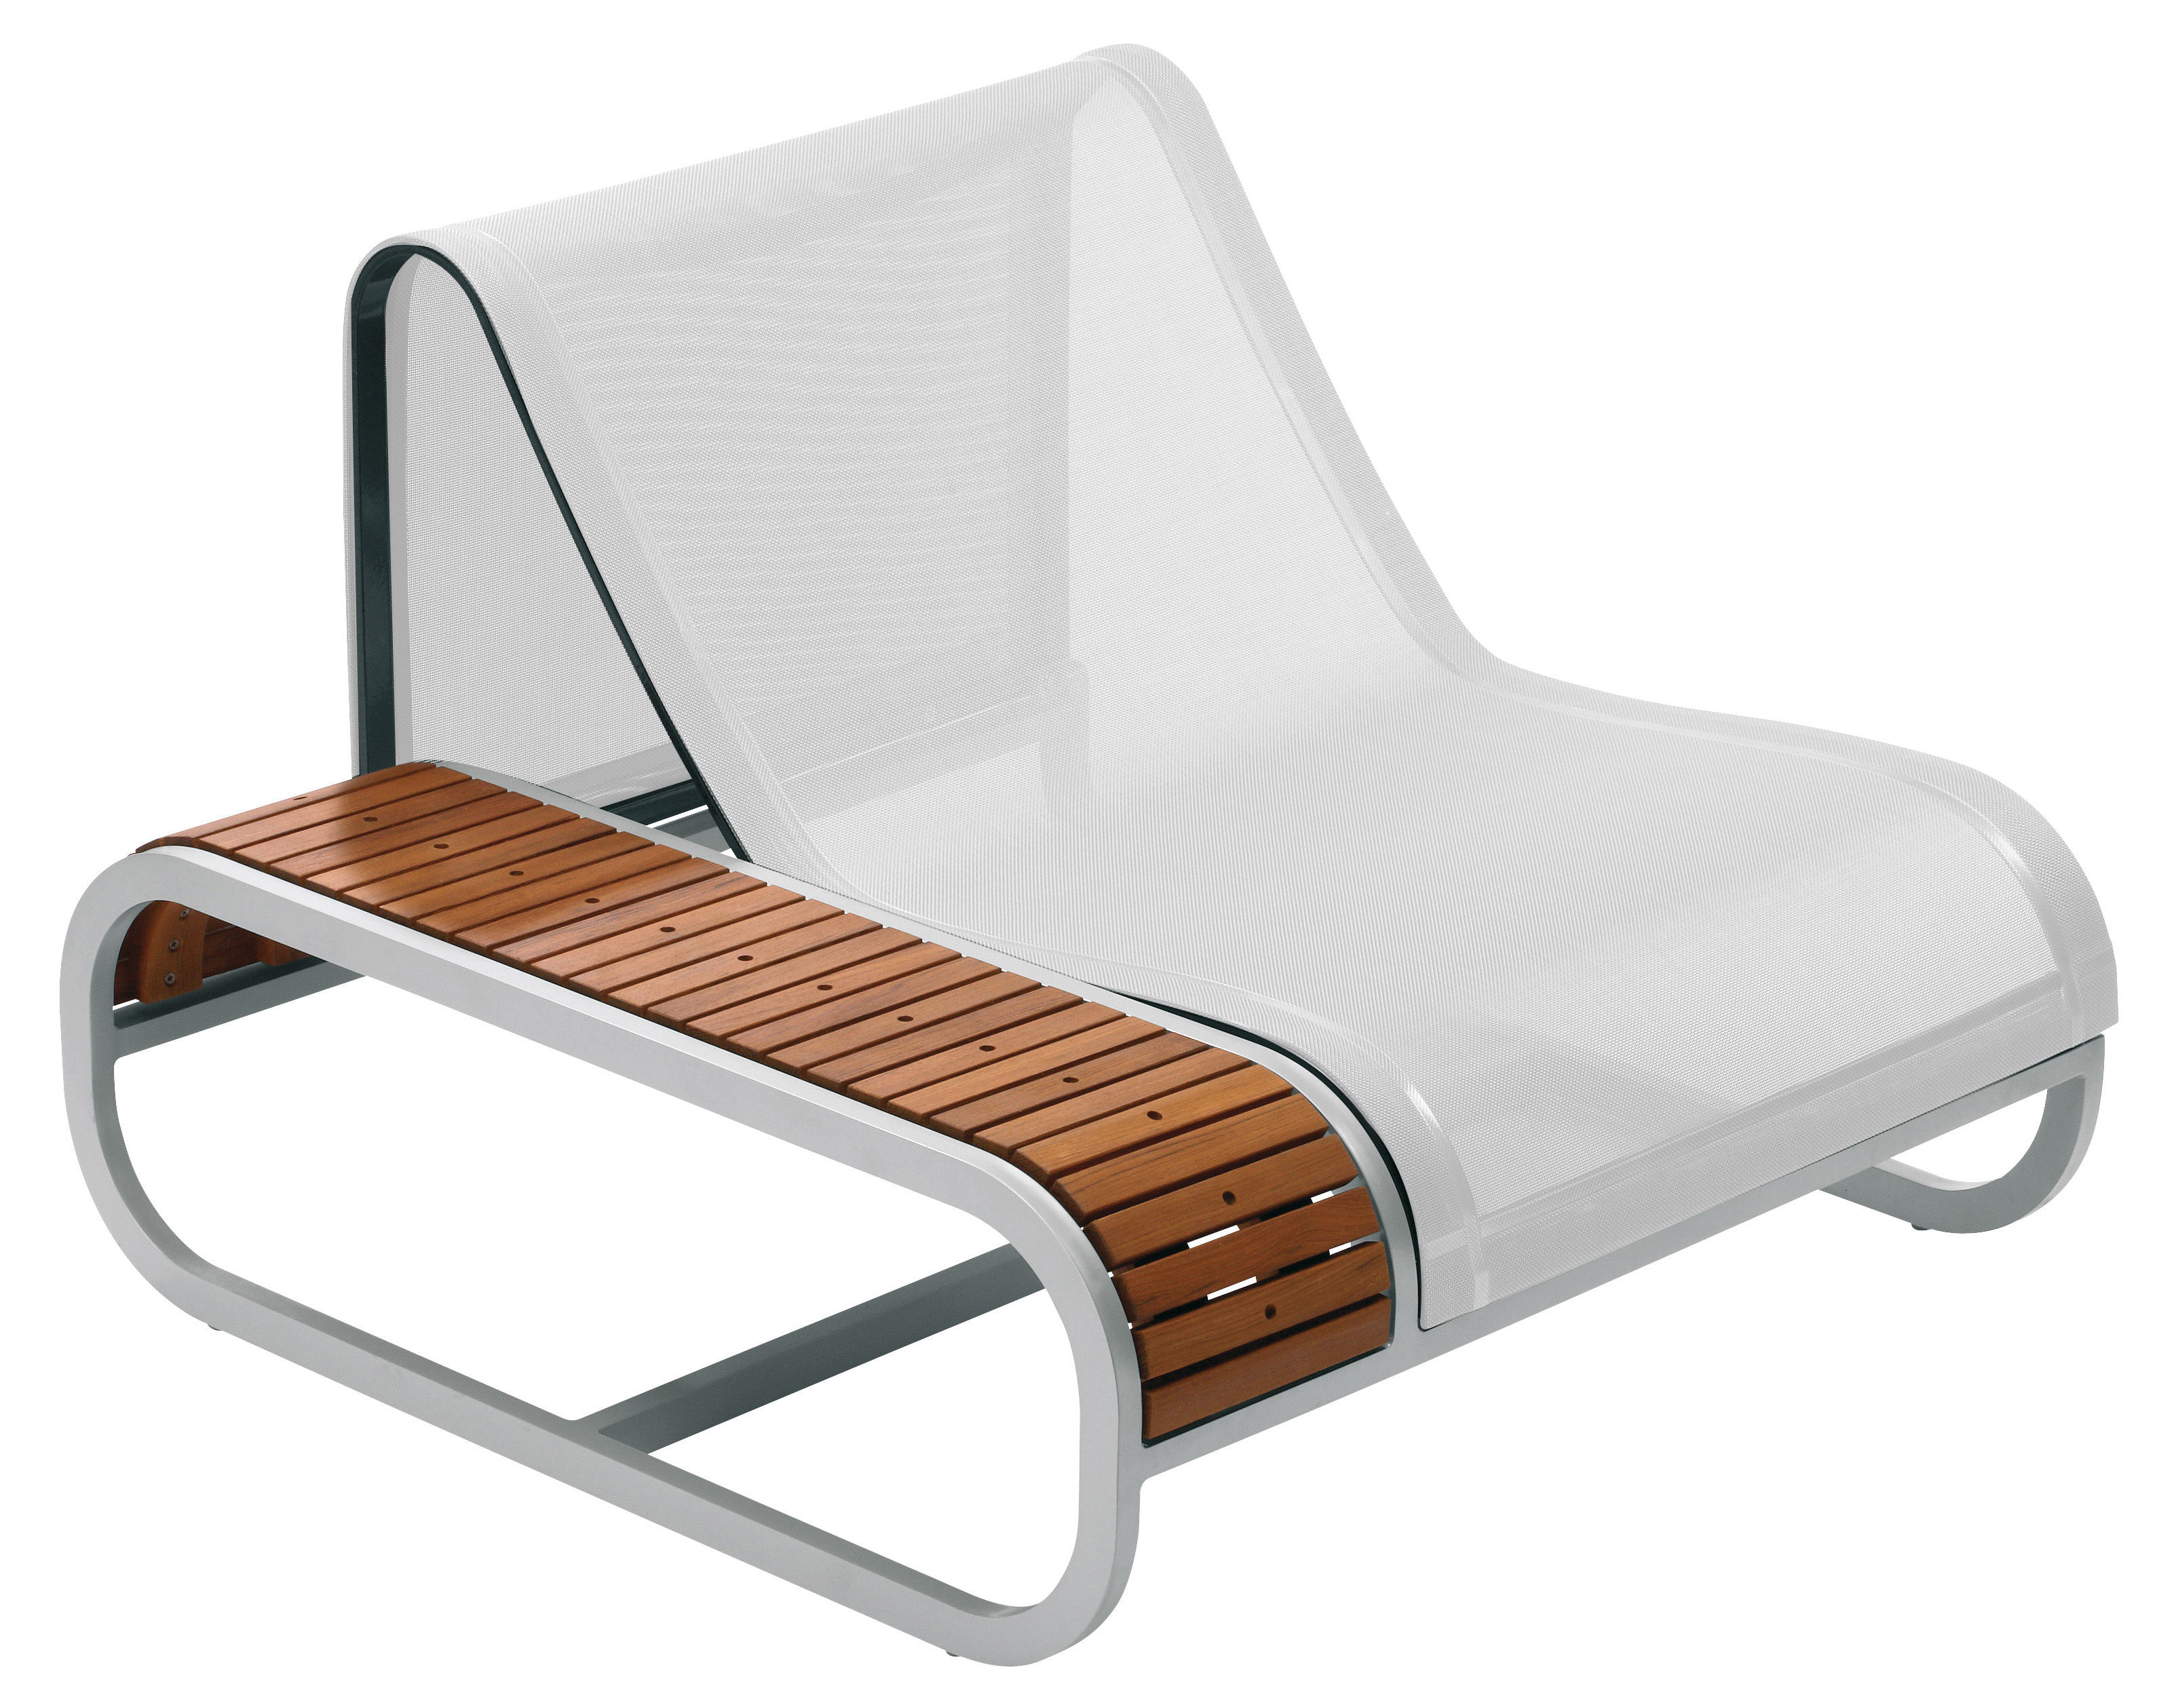 Outdoor - Armchairs & Rocking Chairs - Tandem Low armchair - Teak version - Right armrest by EGO Paris - Teck / White fabric - Batyline cloth, Lacquered aluminium, Teak